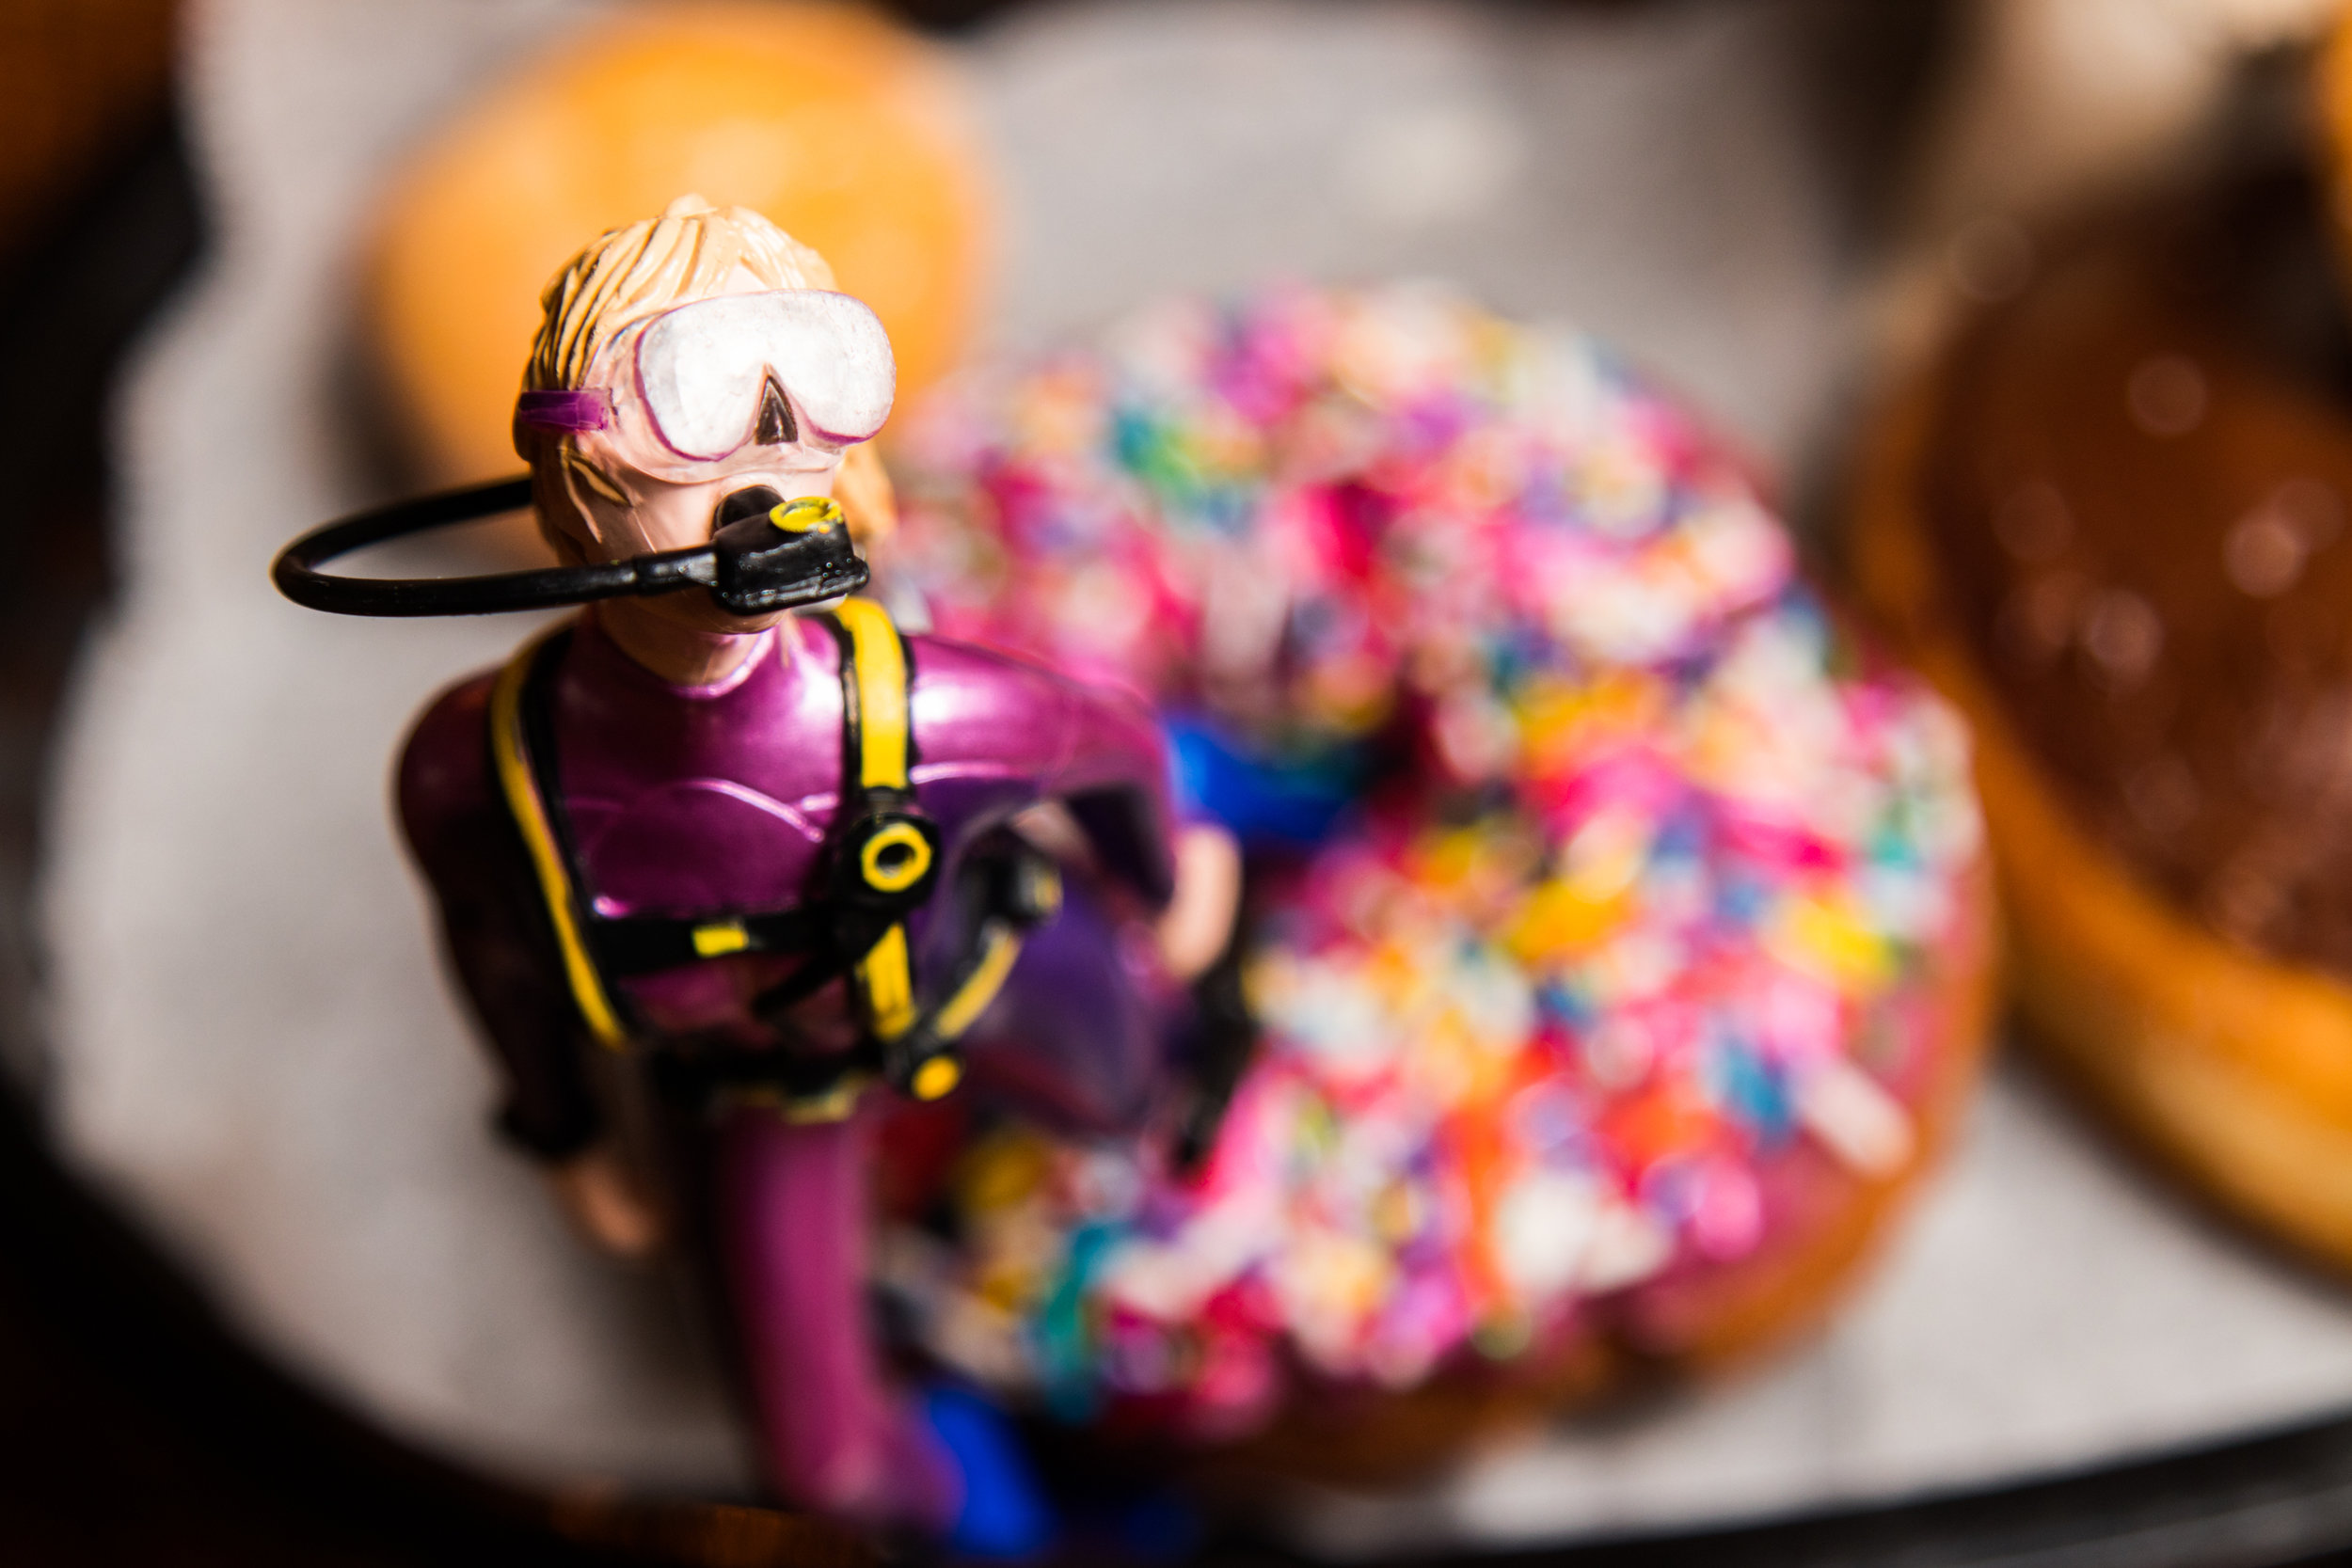 Diver Emerges from Sprinkles